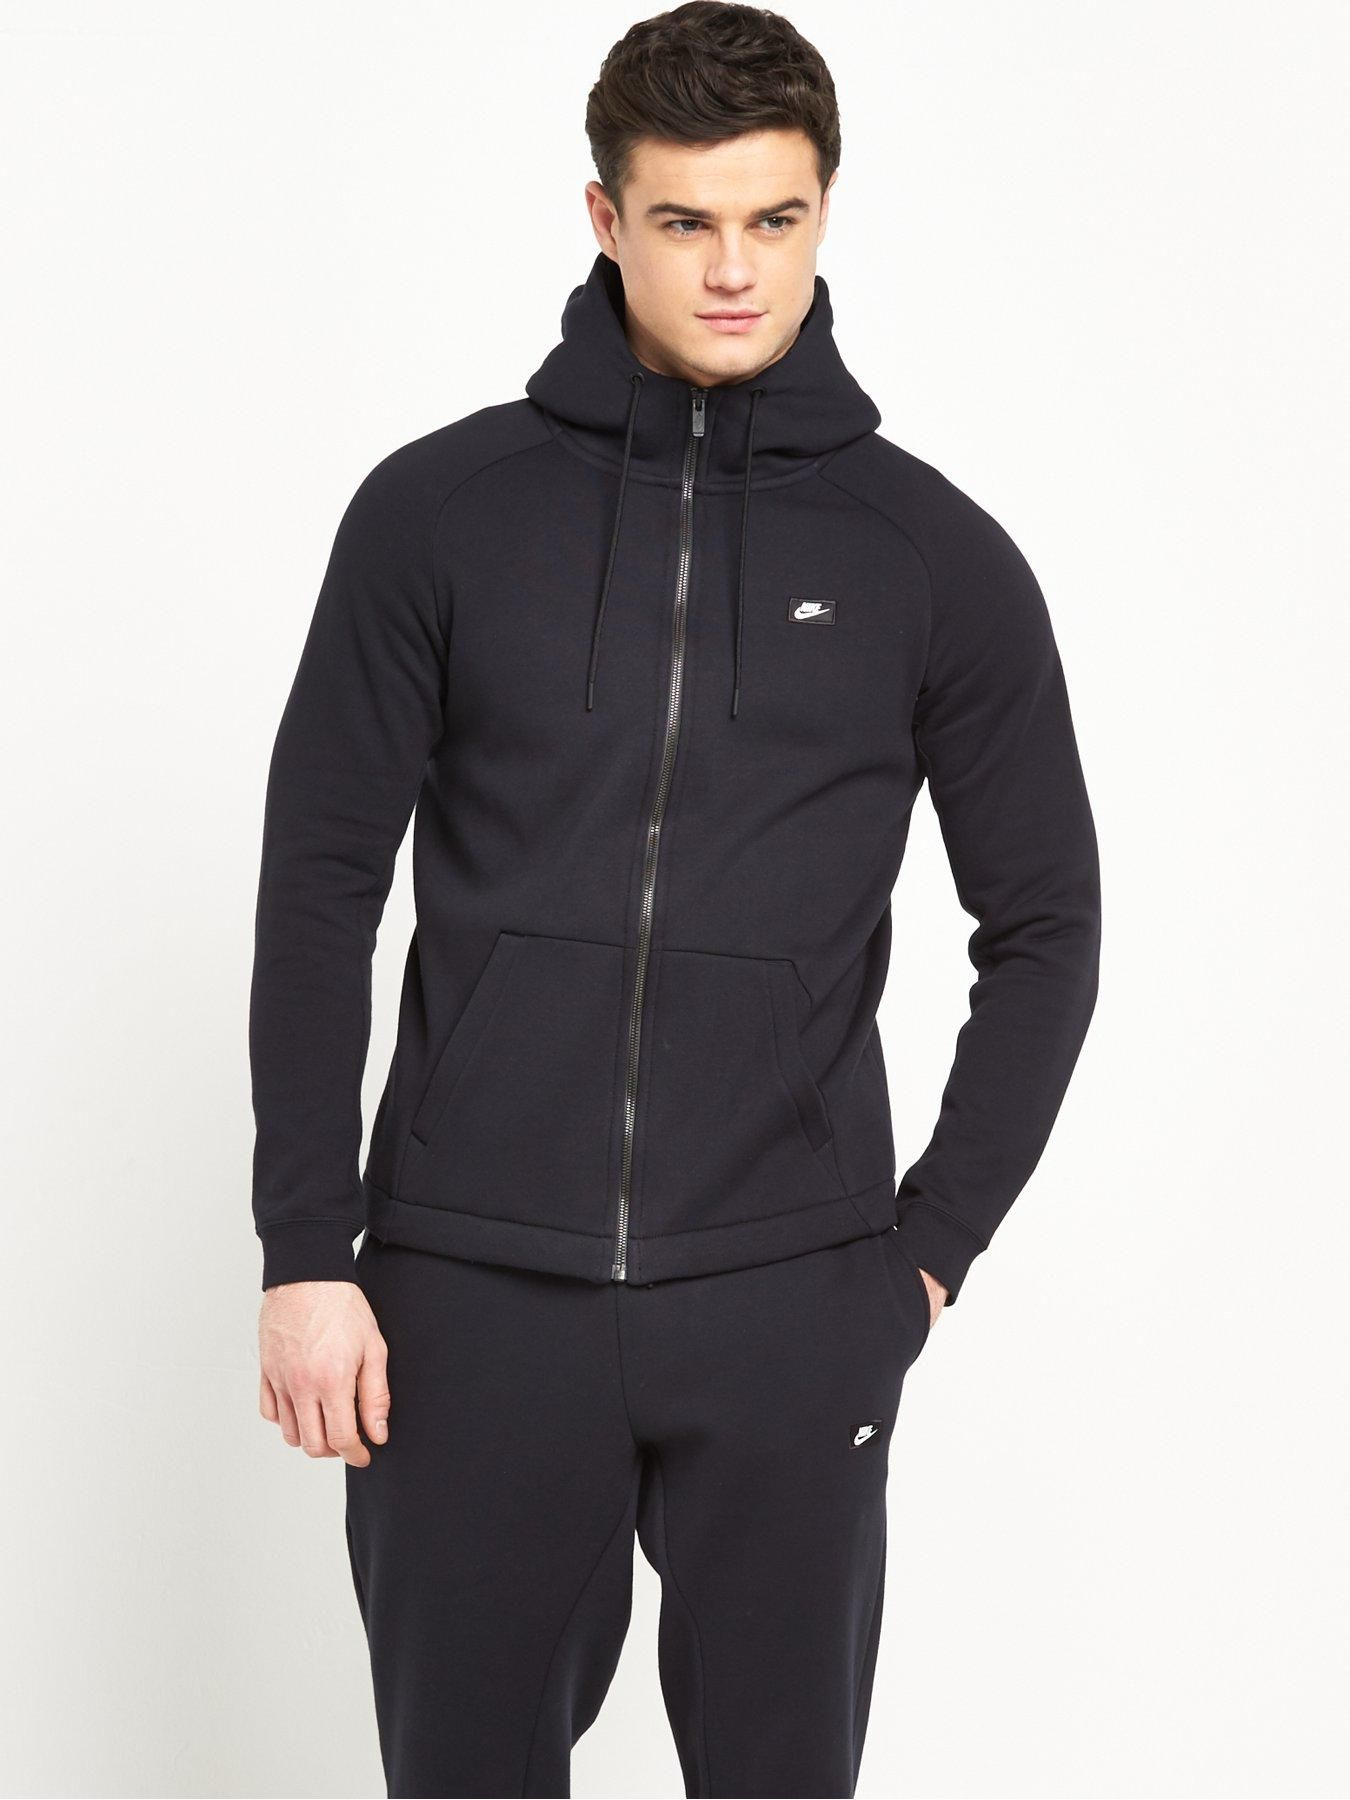 ed8ebb12a13 Washing Instructions: Machine Washable Nike Tracksuit, Joggers, Tech  Fleece, Full Zip Hoodie